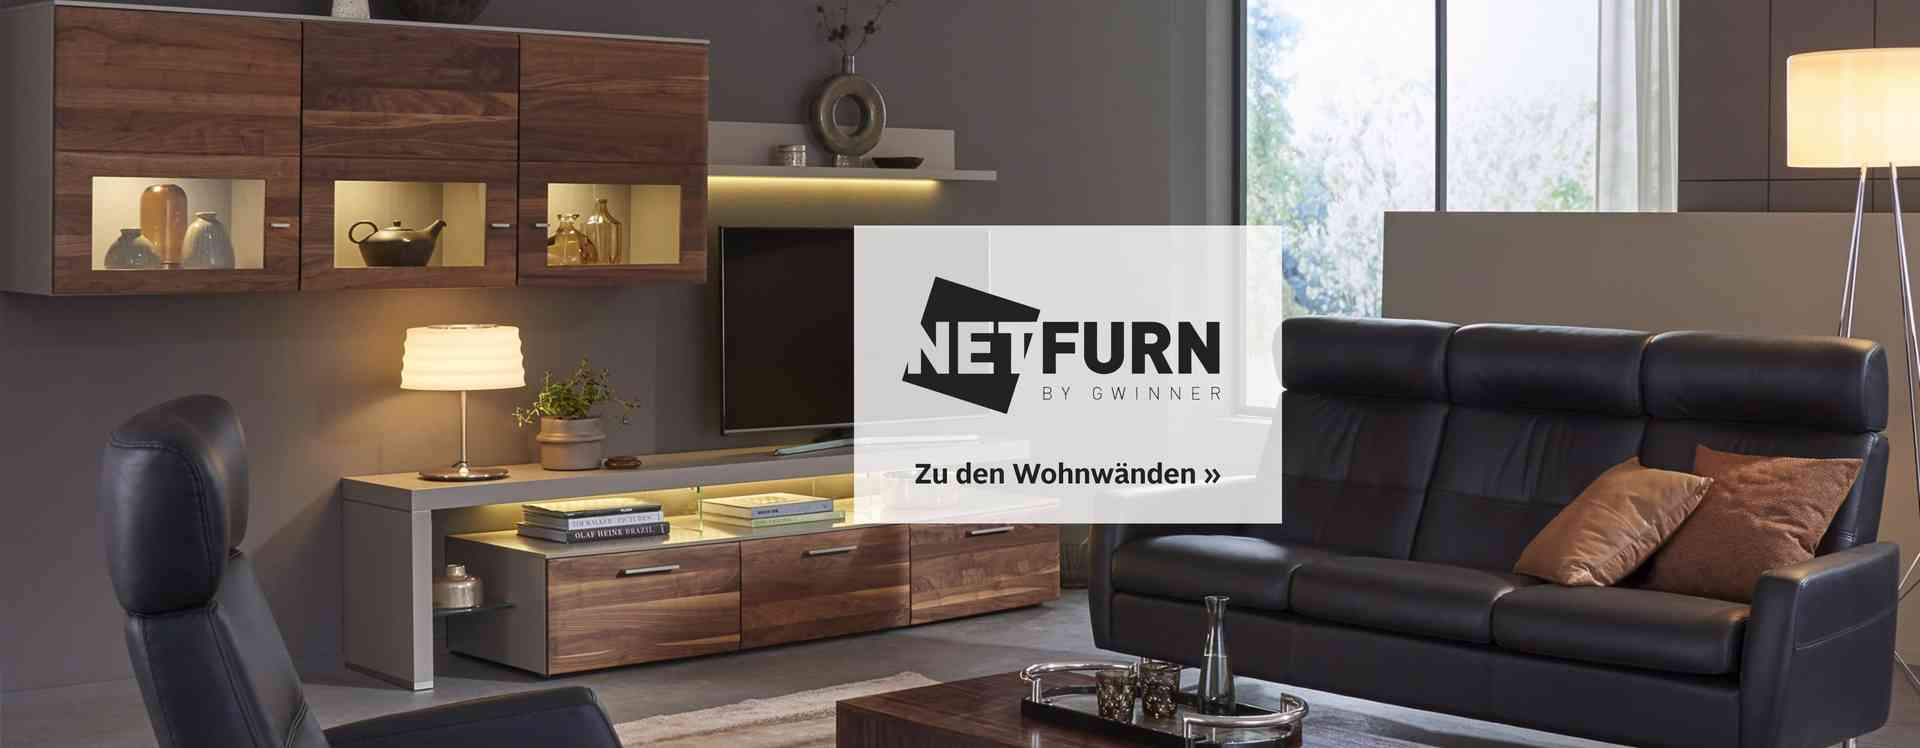 netfurn by gwinner online kaufen otto. Black Bedroom Furniture Sets. Home Design Ideas